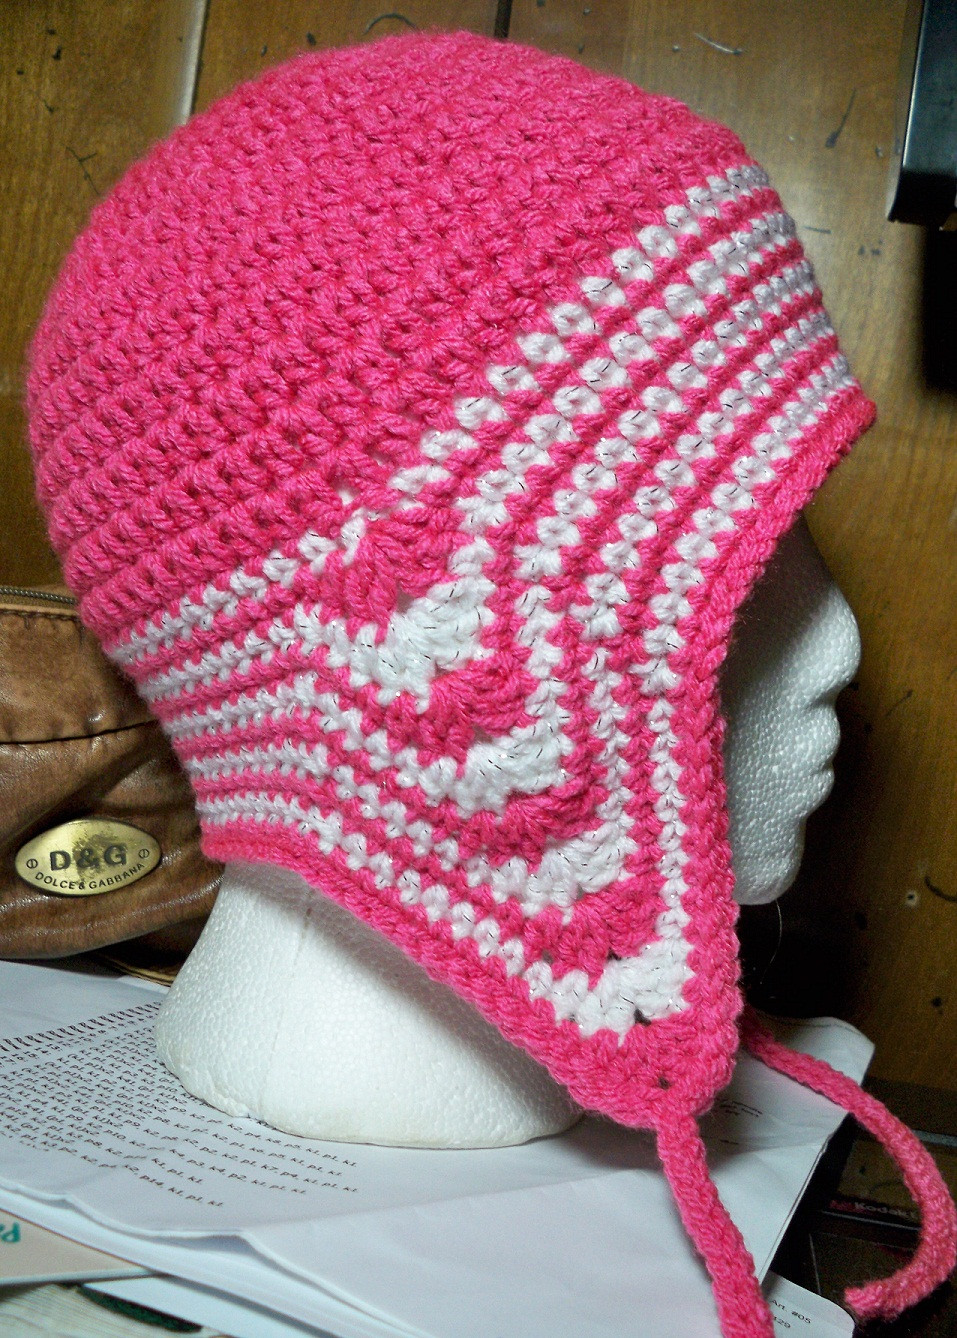 Crochet Hat with Ear Flaps Inspirational Jr Crochet Designs 2 New Designs Just In Time for Christmas Of Delightful 50 Pictures Crochet Hat with Ear Flaps